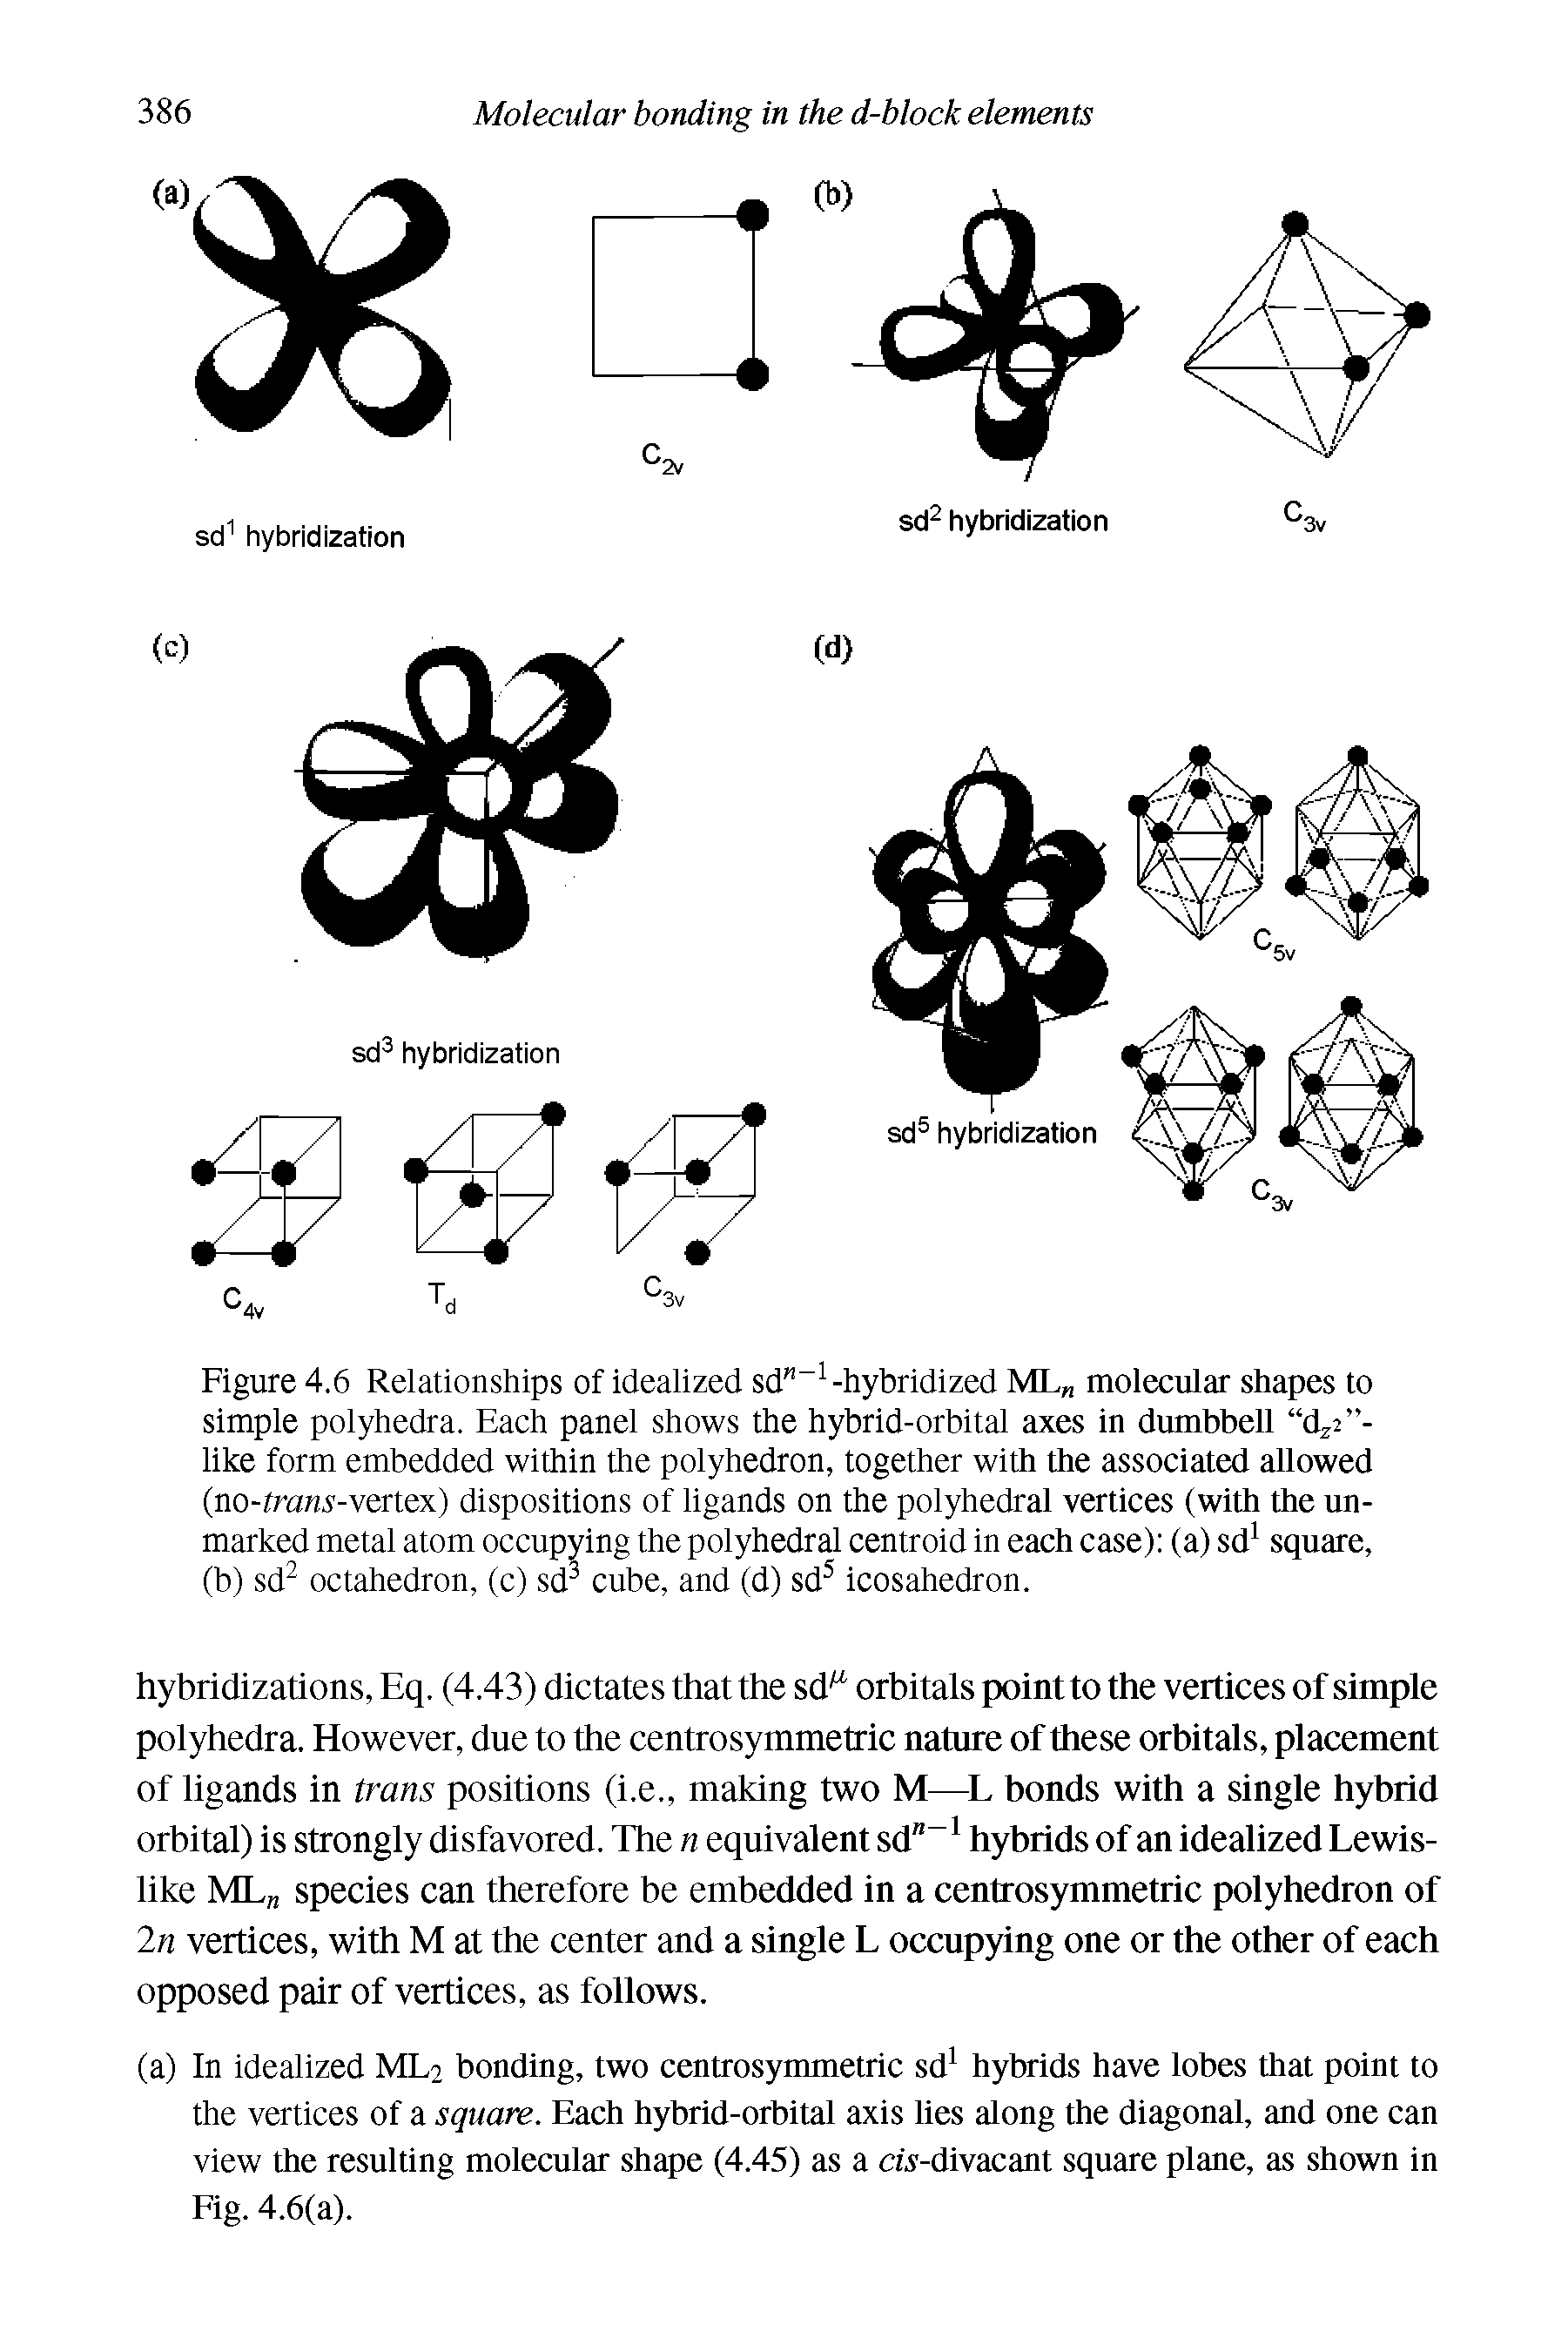 "Figure 4.6 Relationships of idealized sd -1 -hybridized ML <a href=""/info/molecular_shape"">molecular shapes</a> to simple polyhedra. Each panel shows the <a href=""/info/orbitals_hybrid"">hybrid-orbital</a> axes in dumbbell dz2 -like form embedded within the polyhedron, together with the associated allowed (no-hms-vertex) dispositions of ligands on the polyhedral vertices (with the unmarked <a href=""/info/metal_atom"">metal atom</a> occupying the polyhedral centroid in each case) (a) sd1 square, (b) sd2 octahedron, (c) sd3 cube, and (d) sd5 icosahedron."